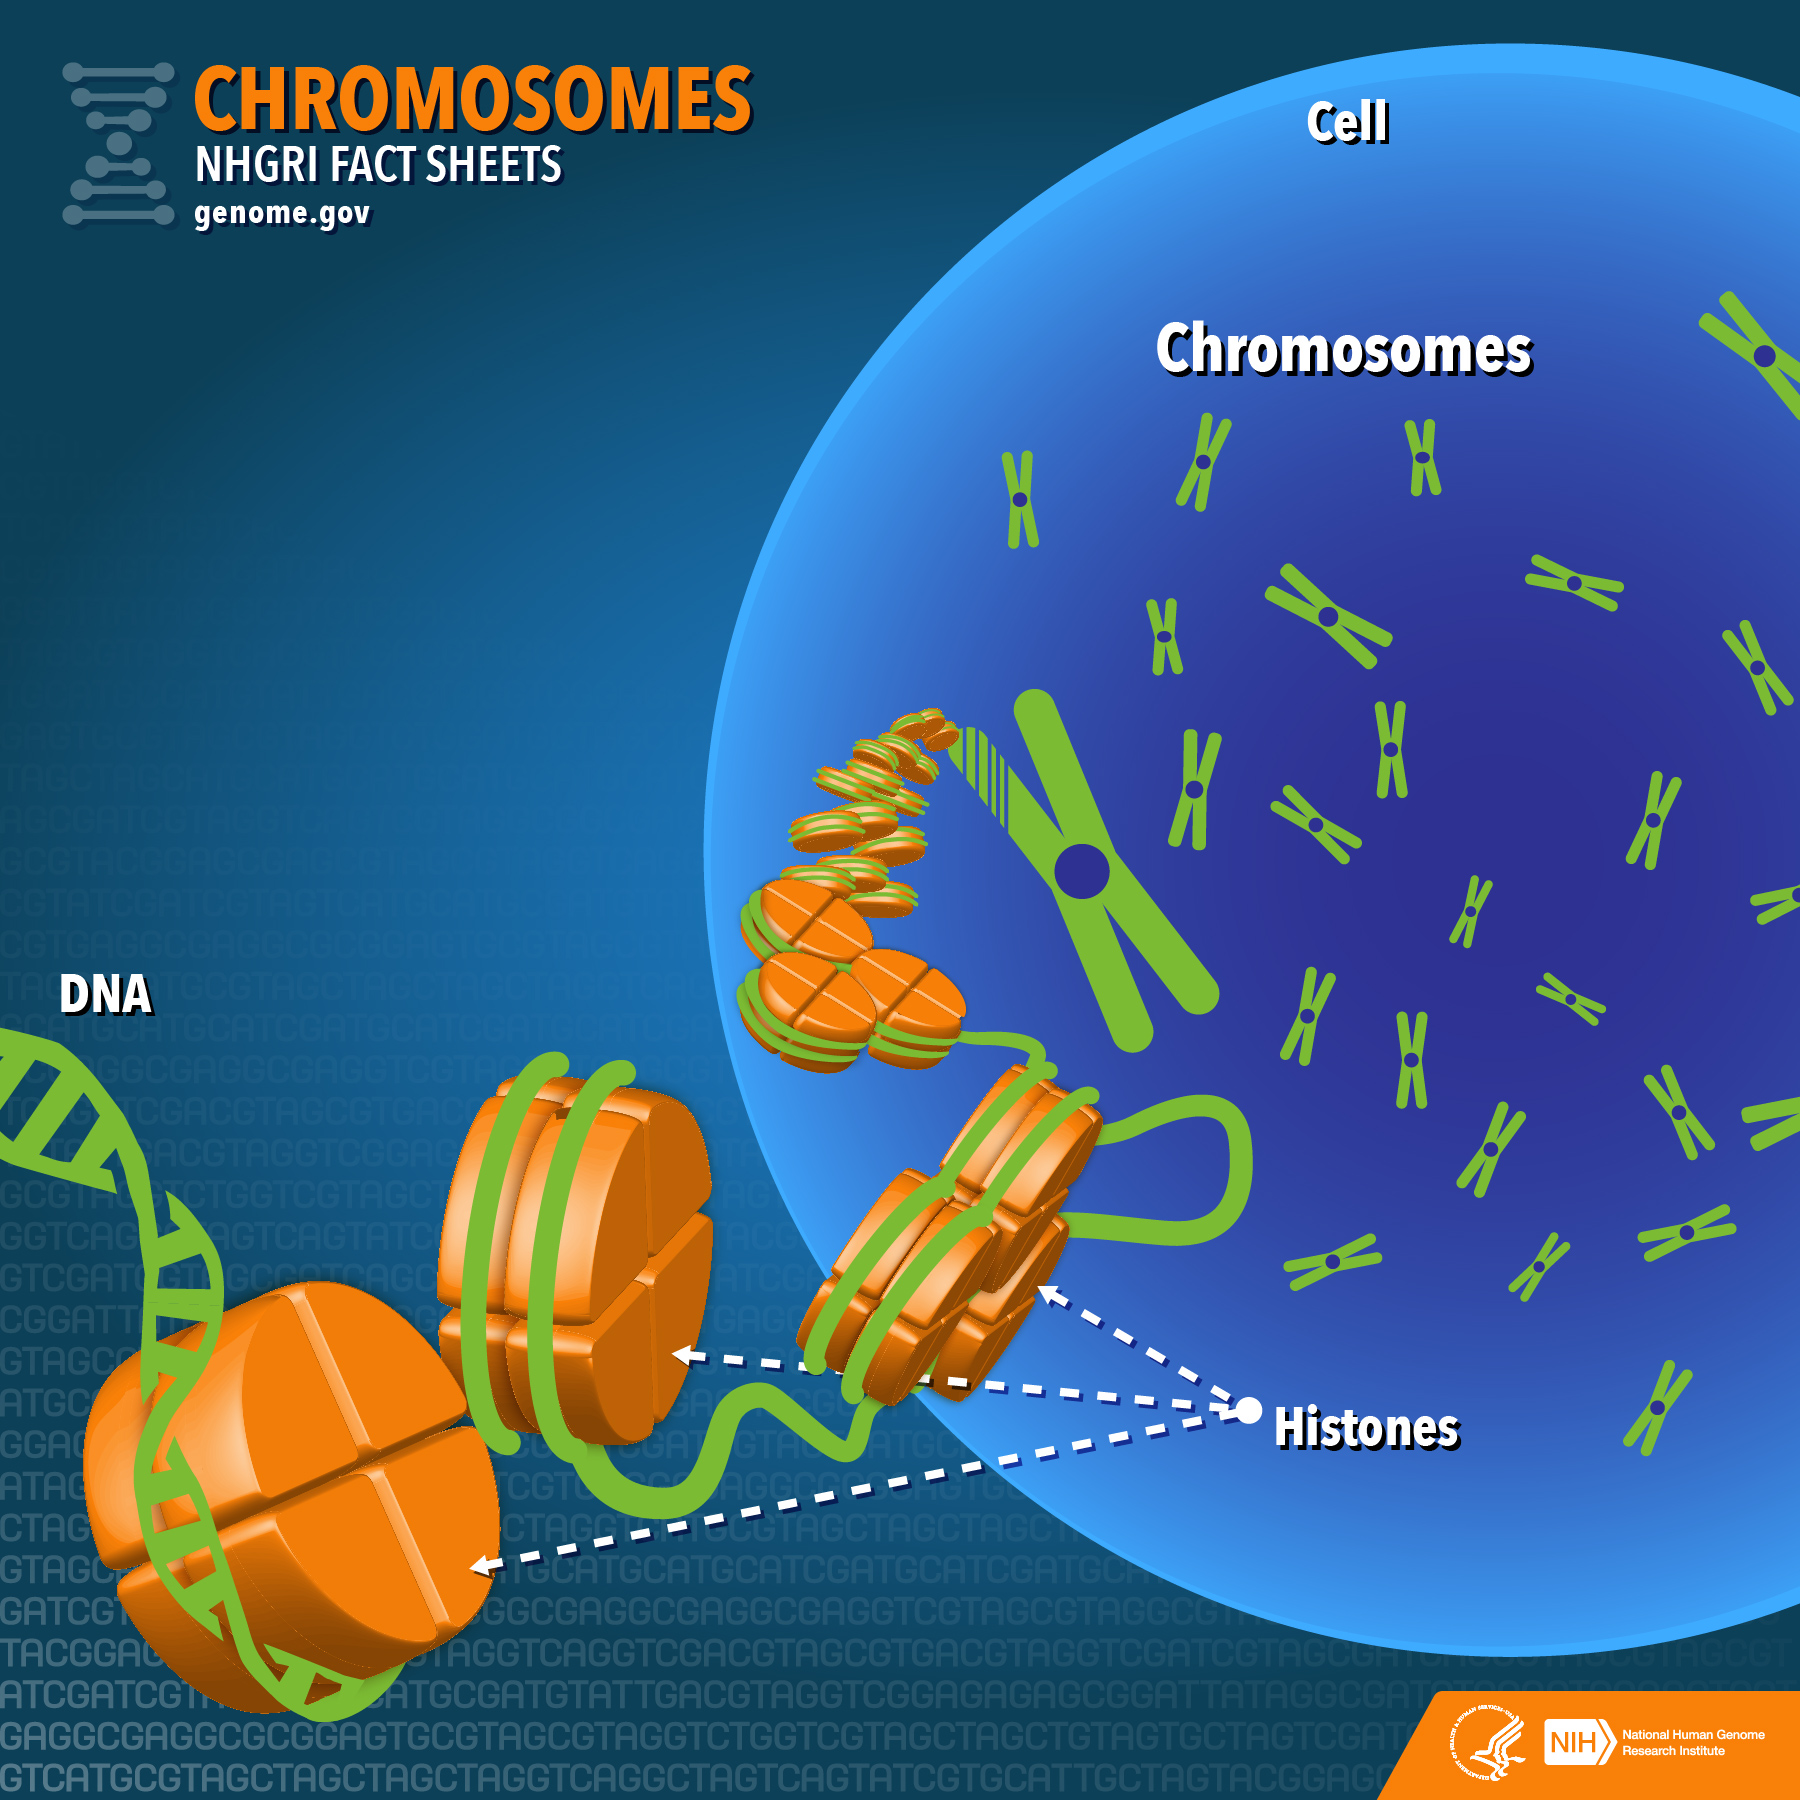 schematic of DNA wrapping into chromosomes